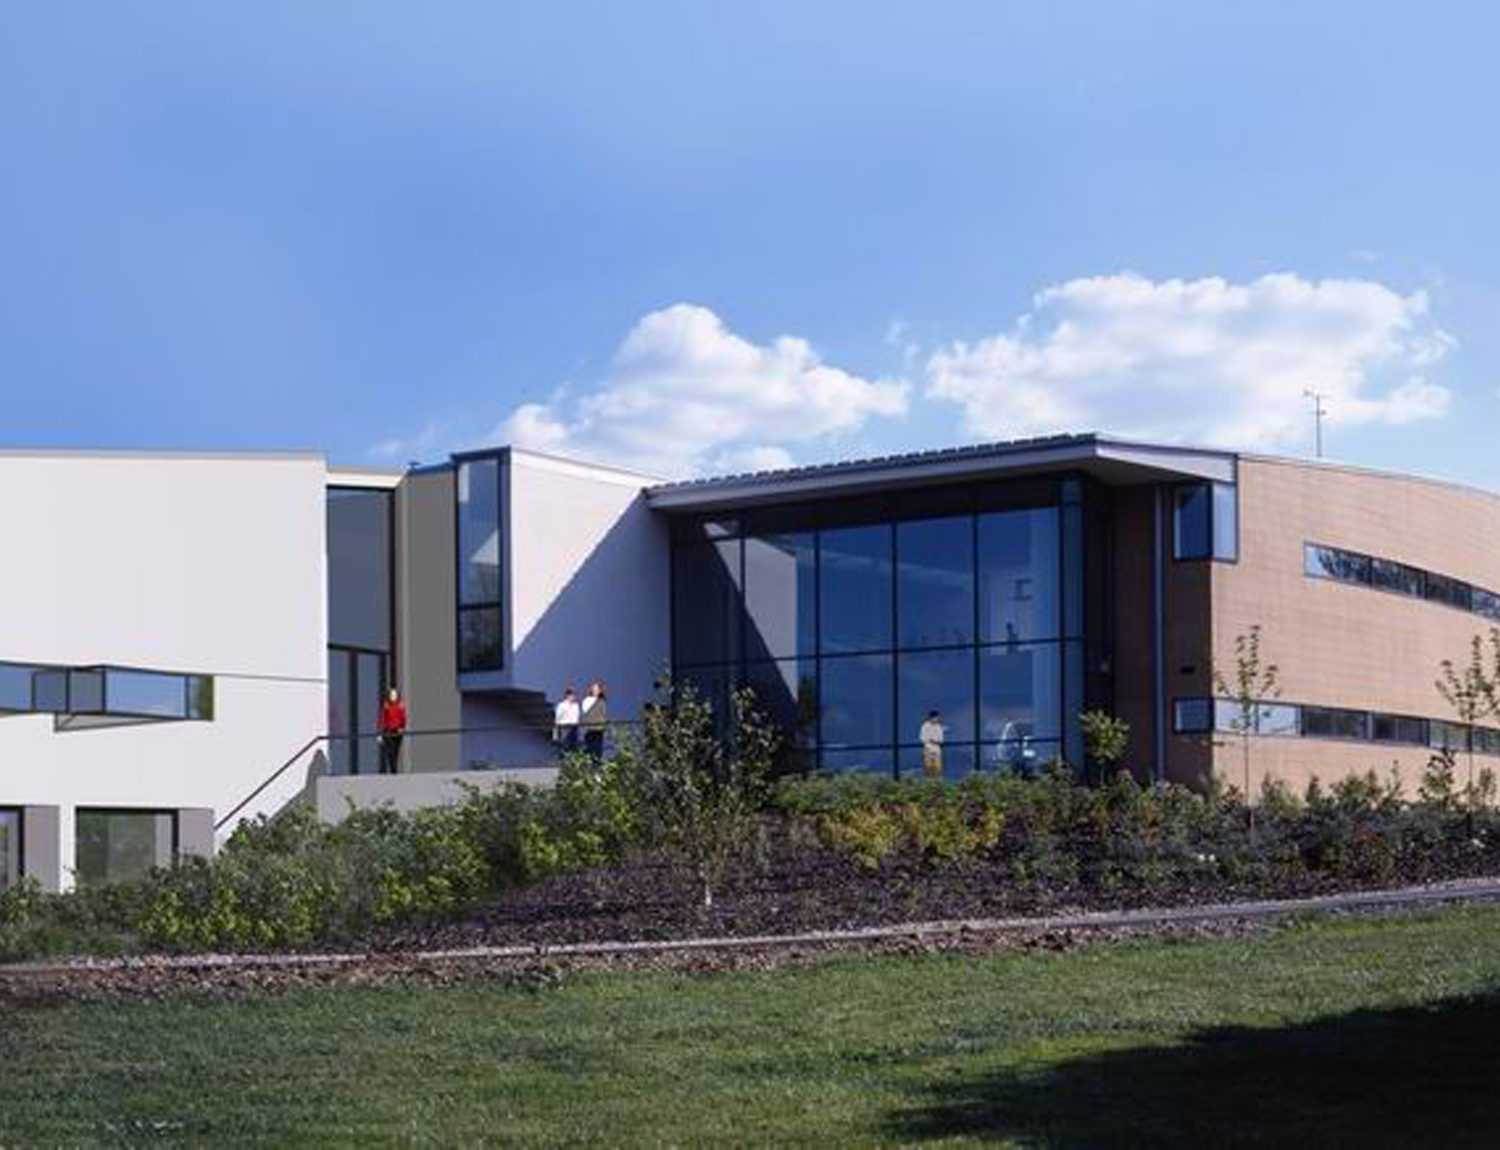 The ISMA Centre